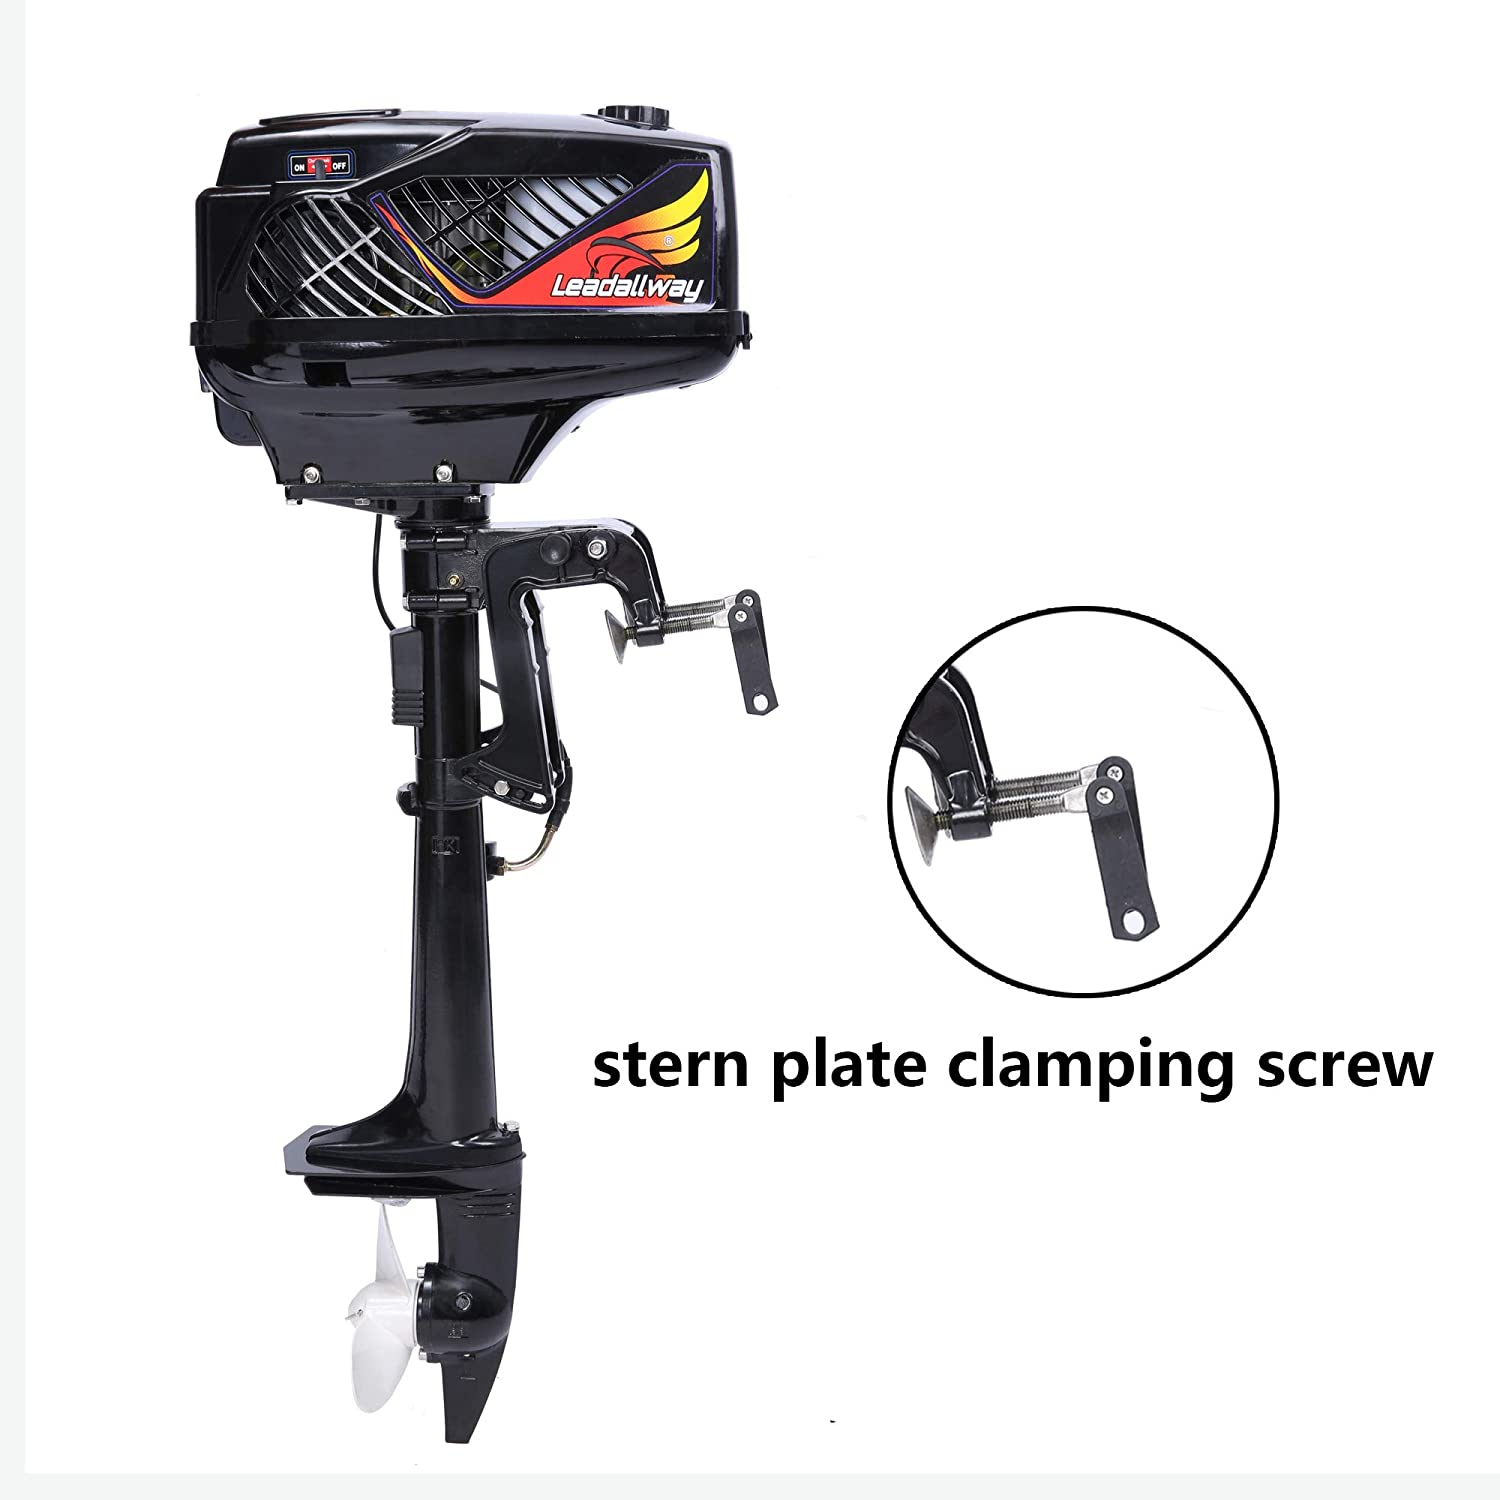 2 Stroke Outboard Motor 3 6HP Superior Boat Engine Water Cooled for  Inflatable Small Boat Fishing Canoe